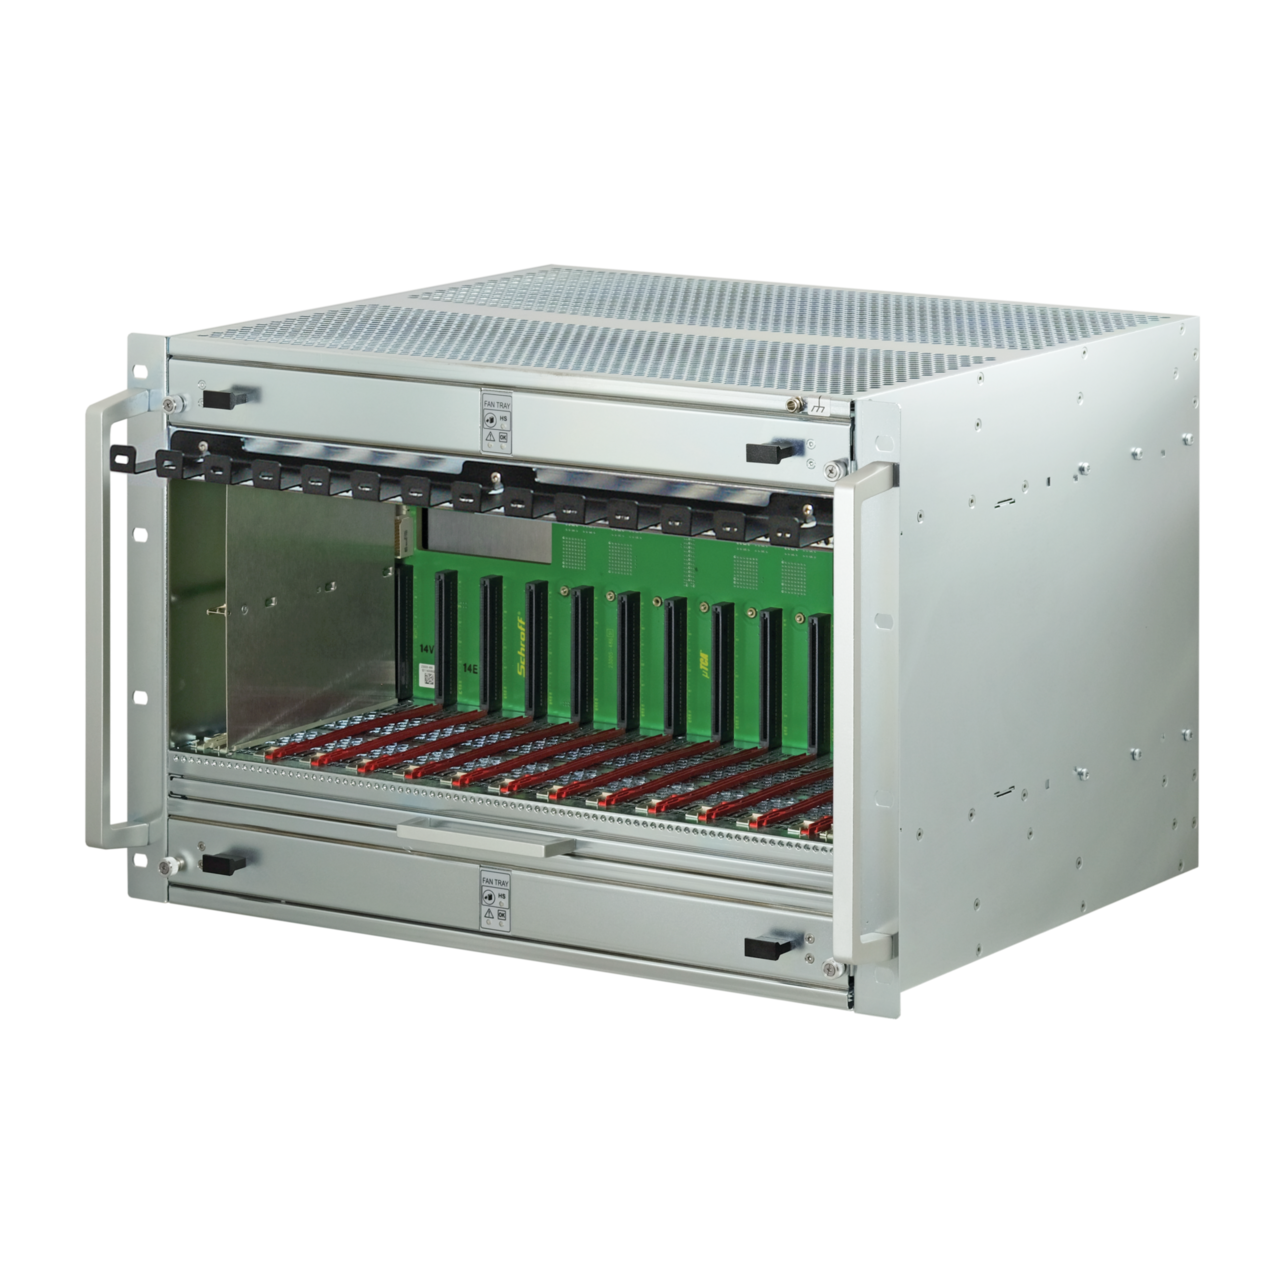 Imagen para MicroTCA.4 system, 7 / 9 U, 84 HP, for 12 double full-size AdvancedMC modules de Schroff - Norteamérica